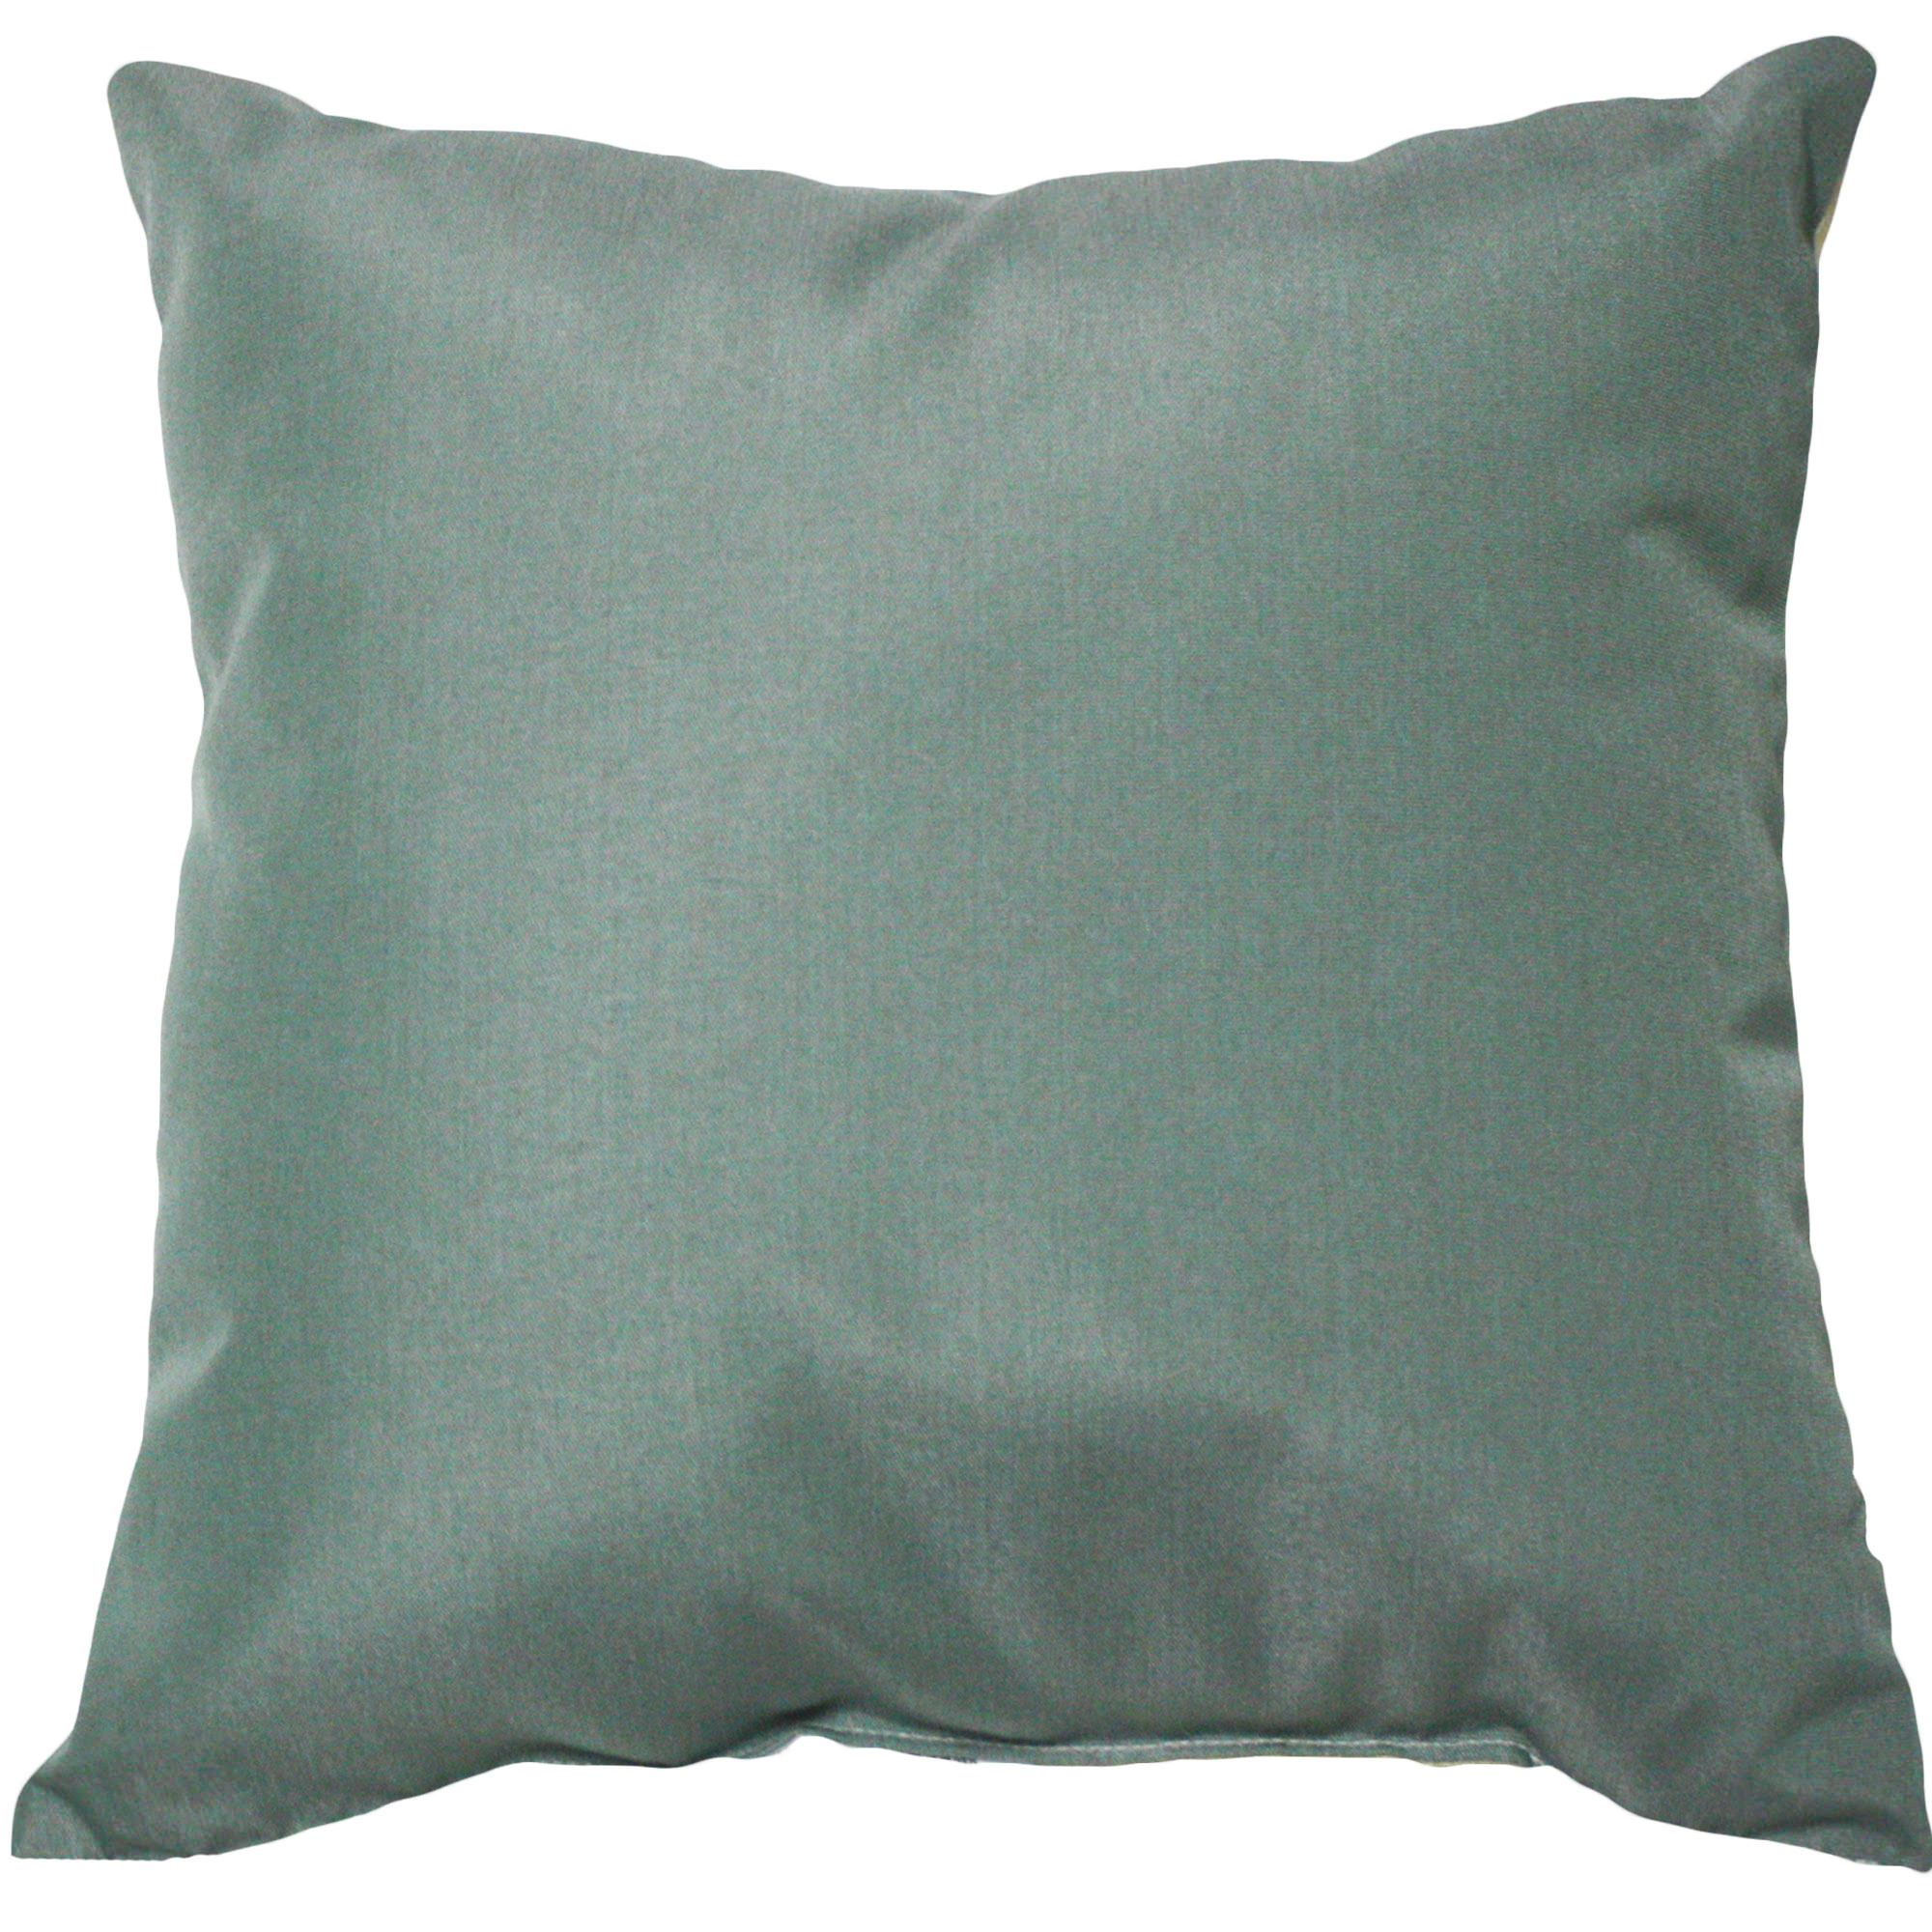 Canvas Spa Sunbrella Outdoor Throw Pillow Discontinued